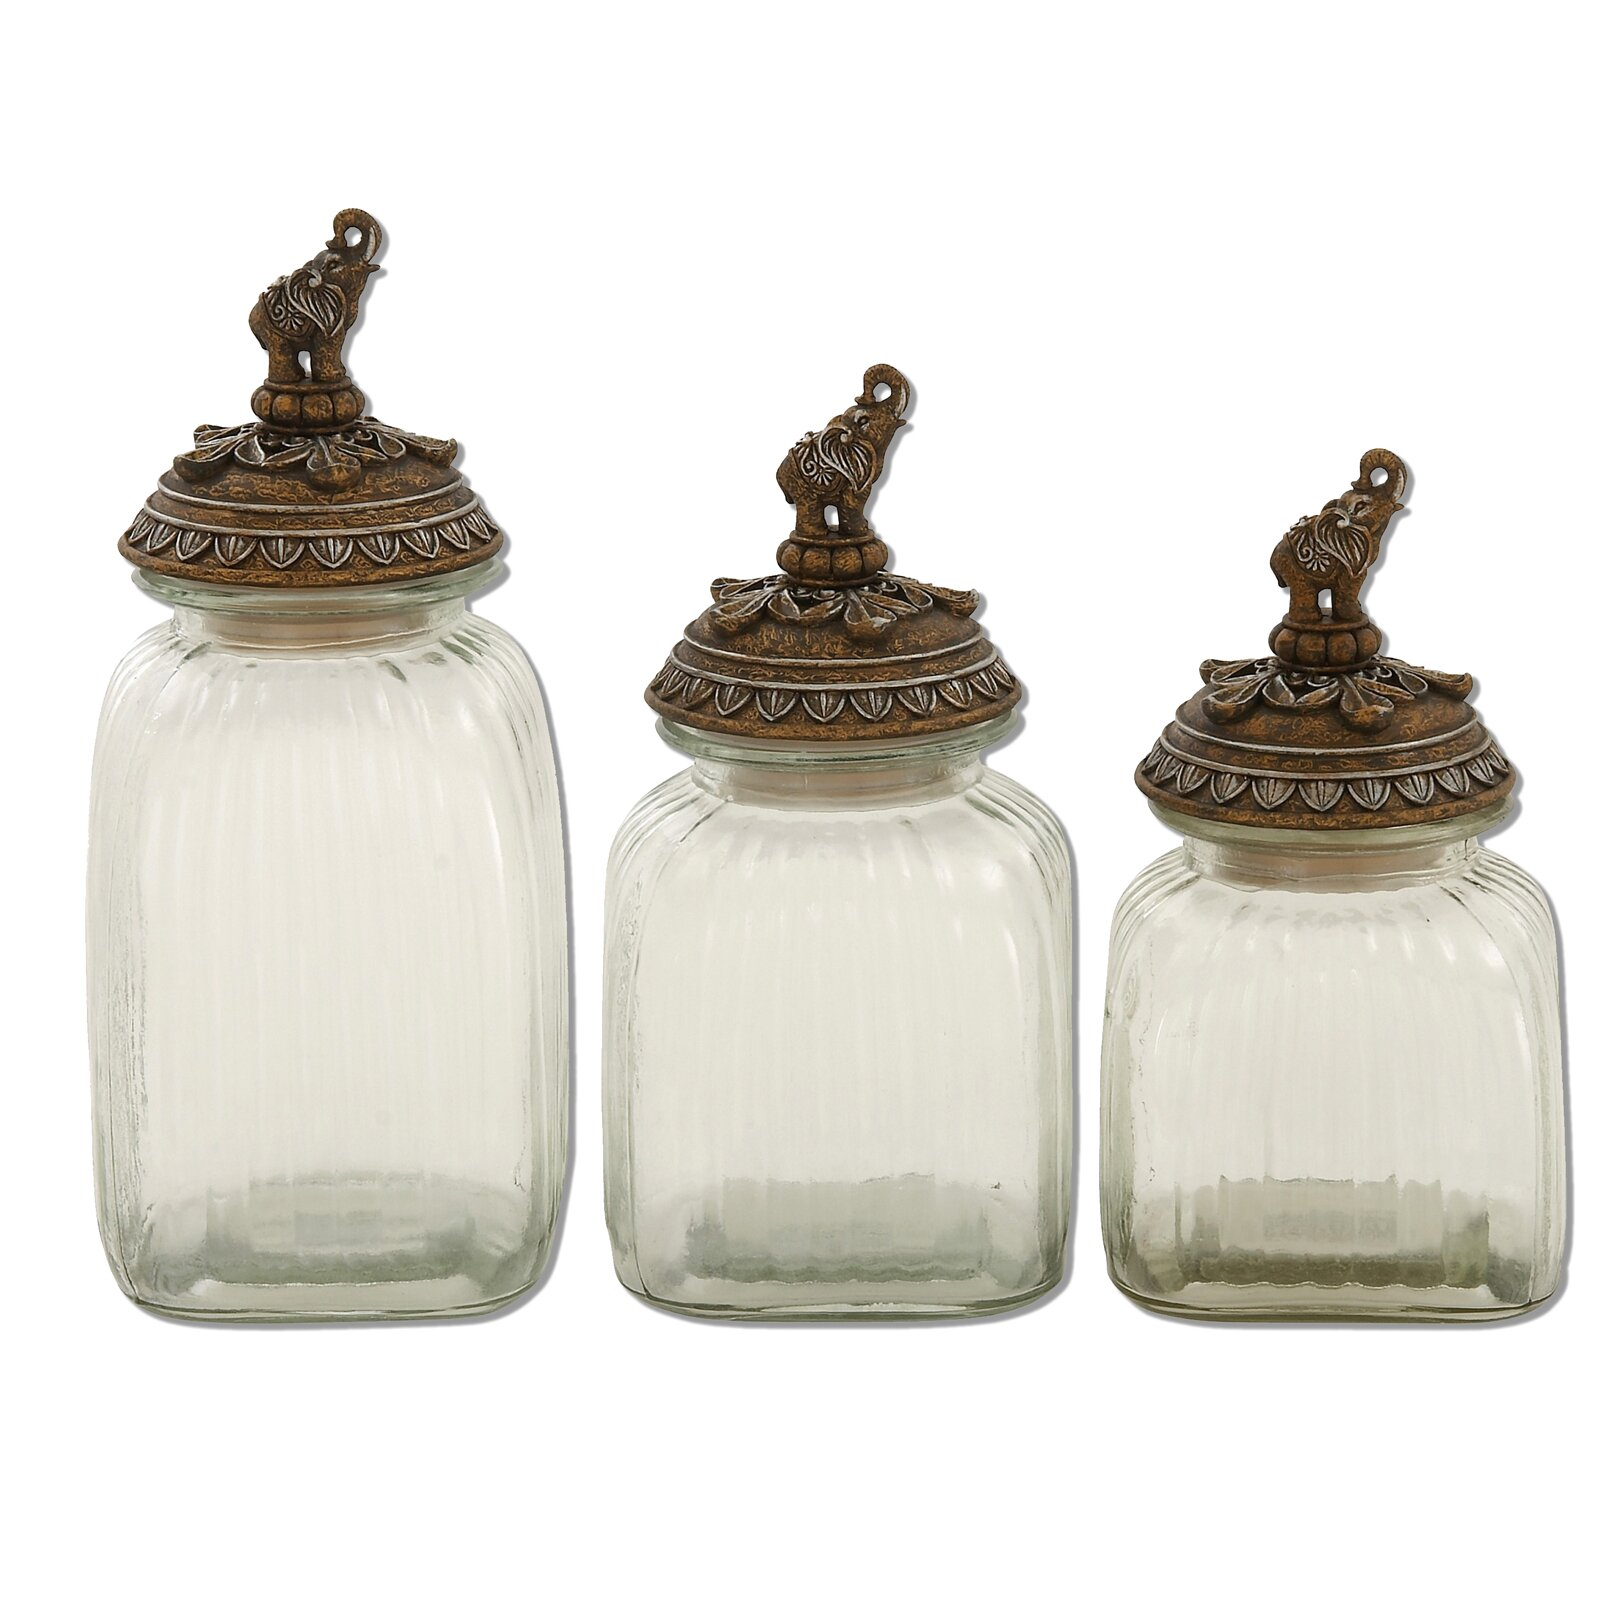 Urban designs 3 piece elephant canister set wayfair for Hearth and home designs canister set